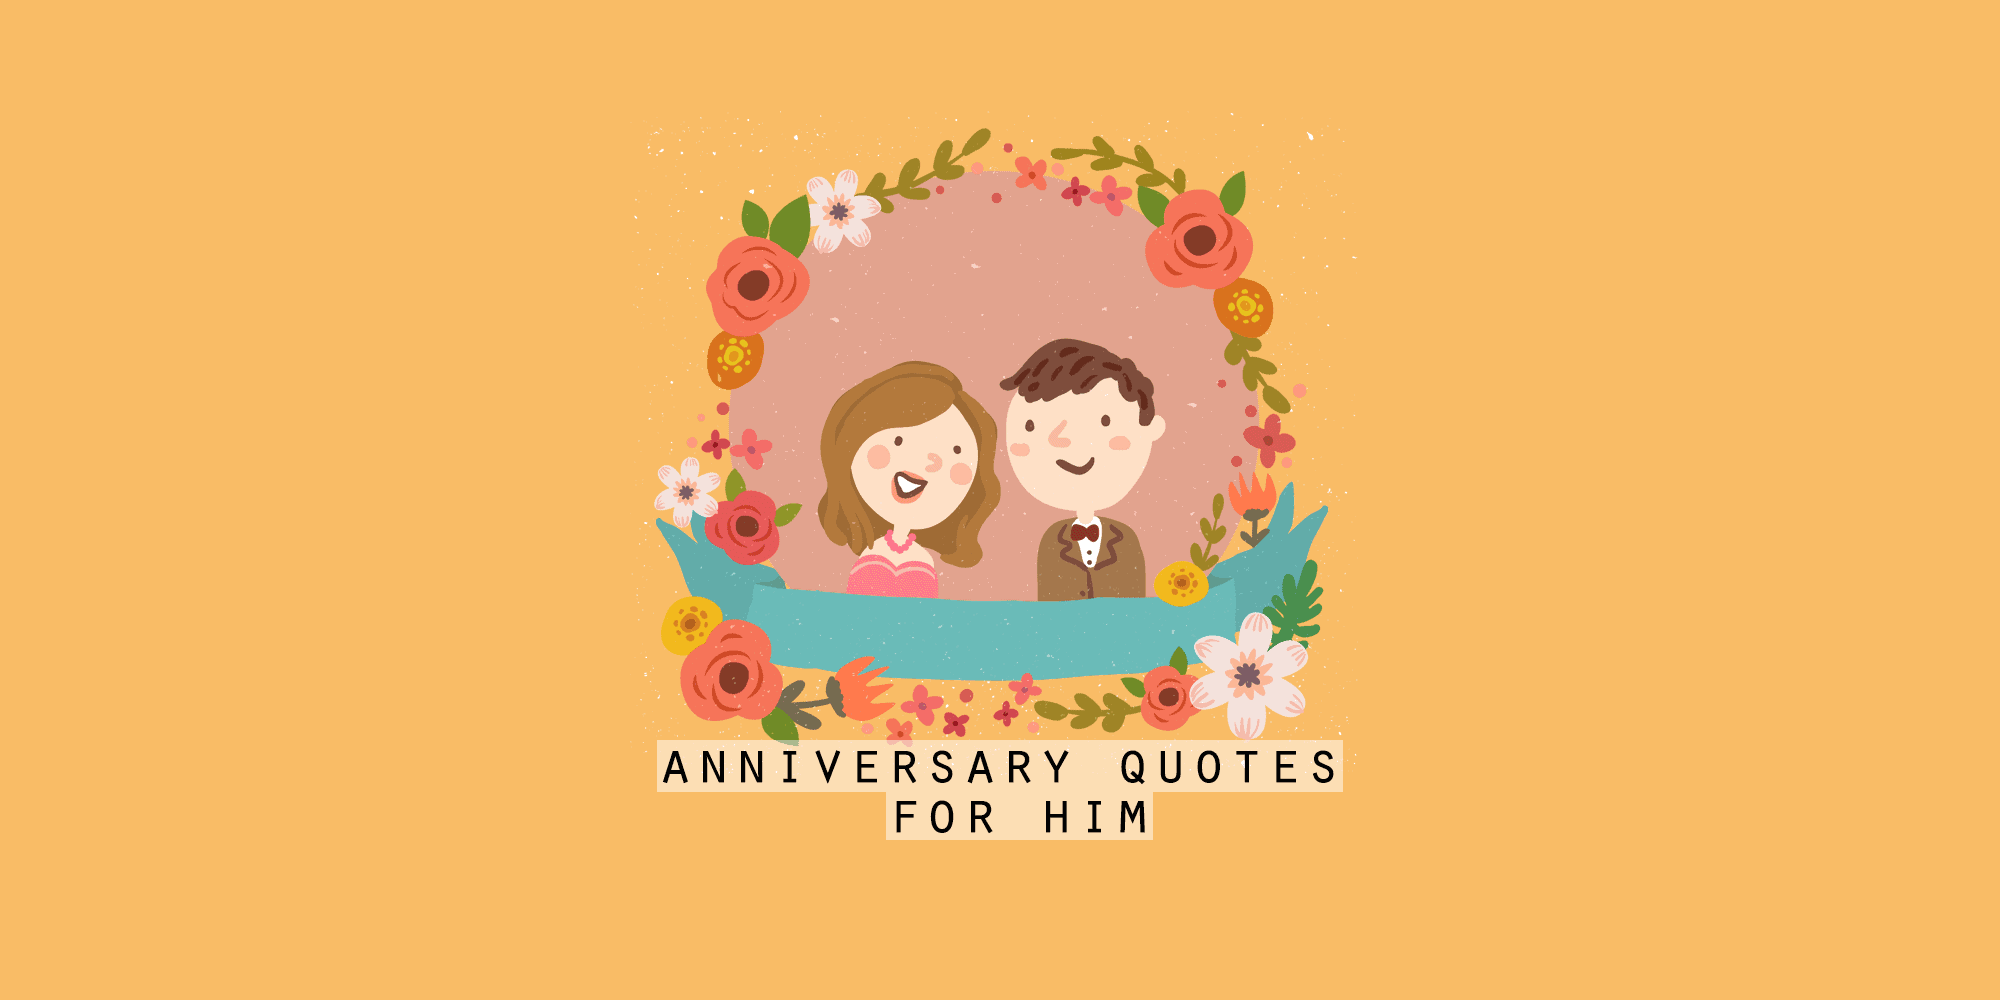 Happy Anniversary Quotes For Him: 90+ Messages from The Heart to Celebrate Time Spent Together (2021)